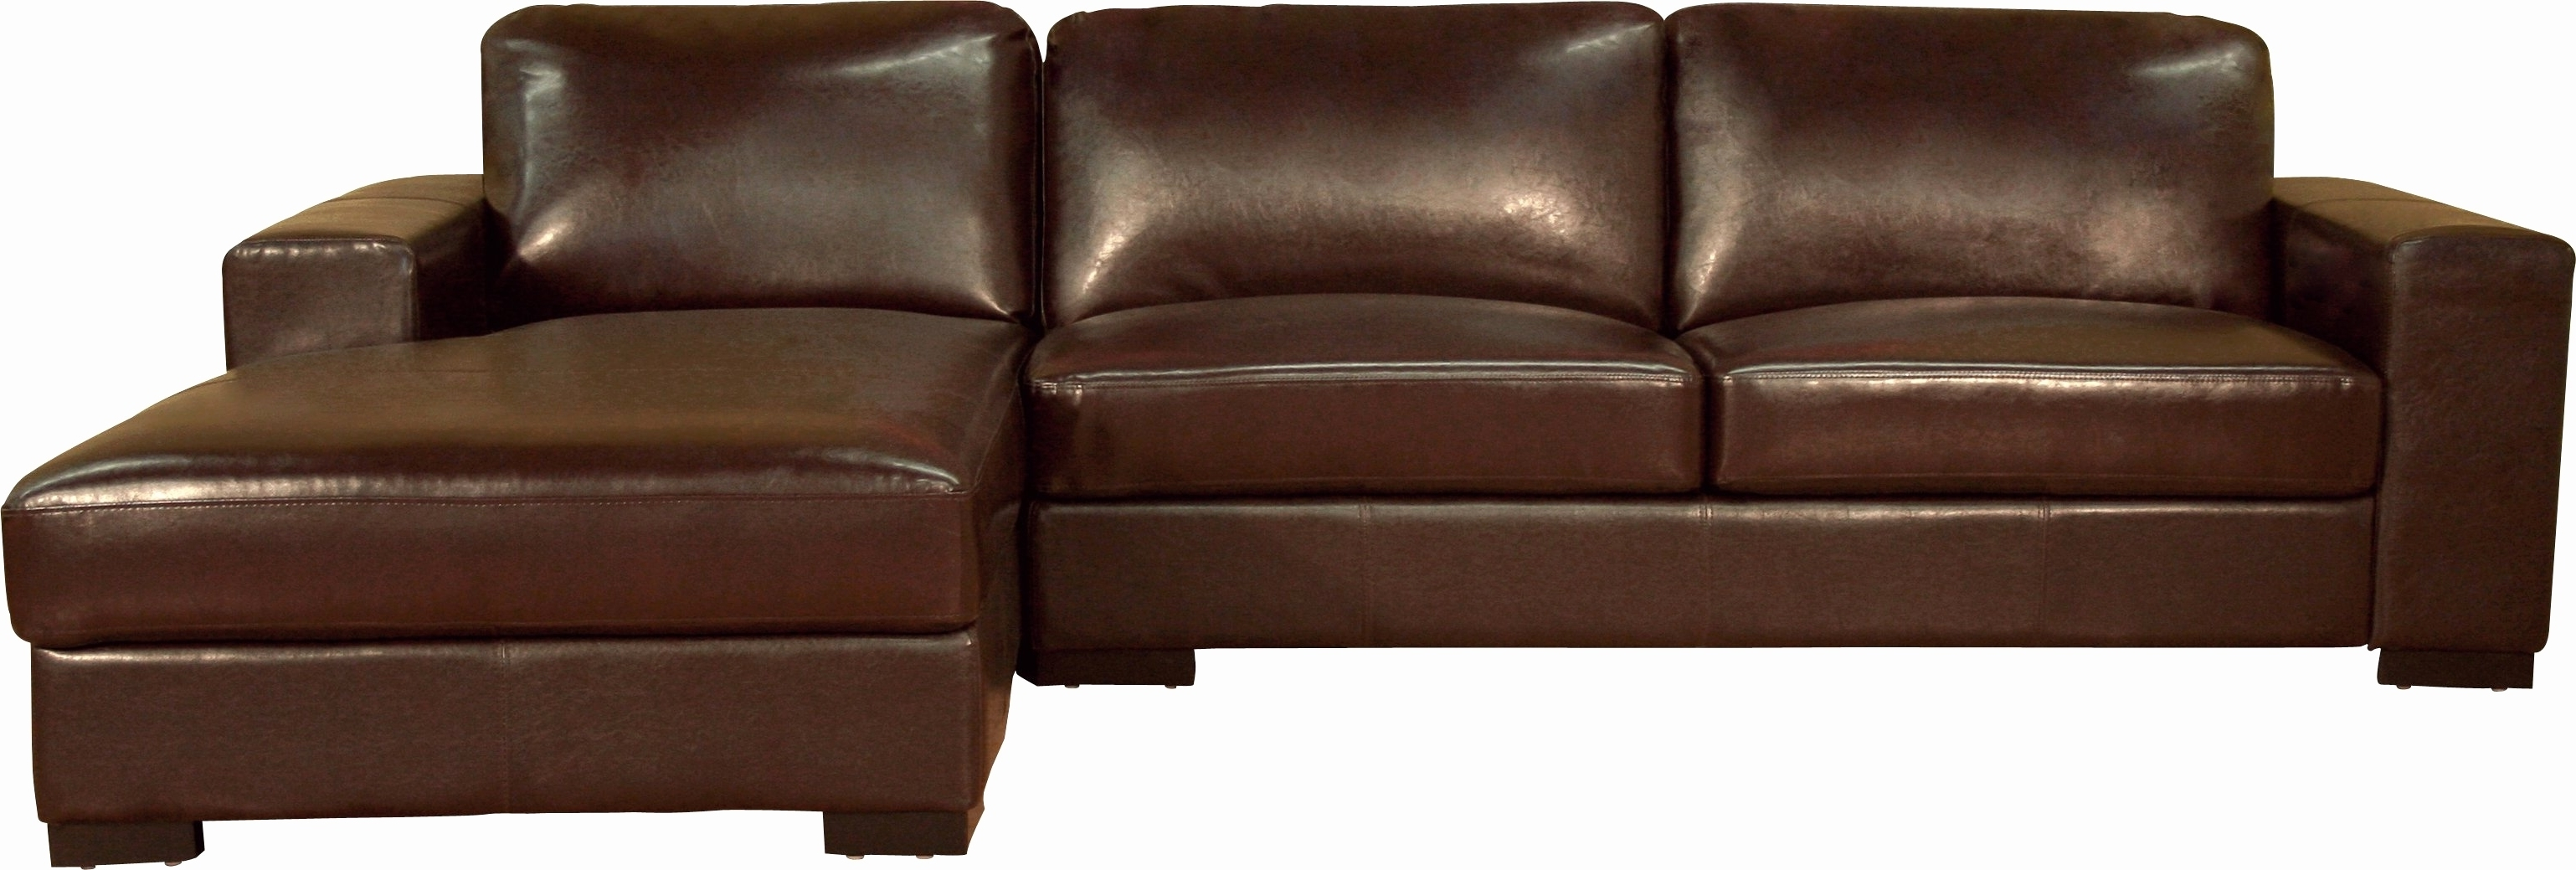 Most Recently Released Leather Lounge Sofas Within New Leather Lounges For Sale 2018 – Couches And Sofas Ideas (View 11 of 20)